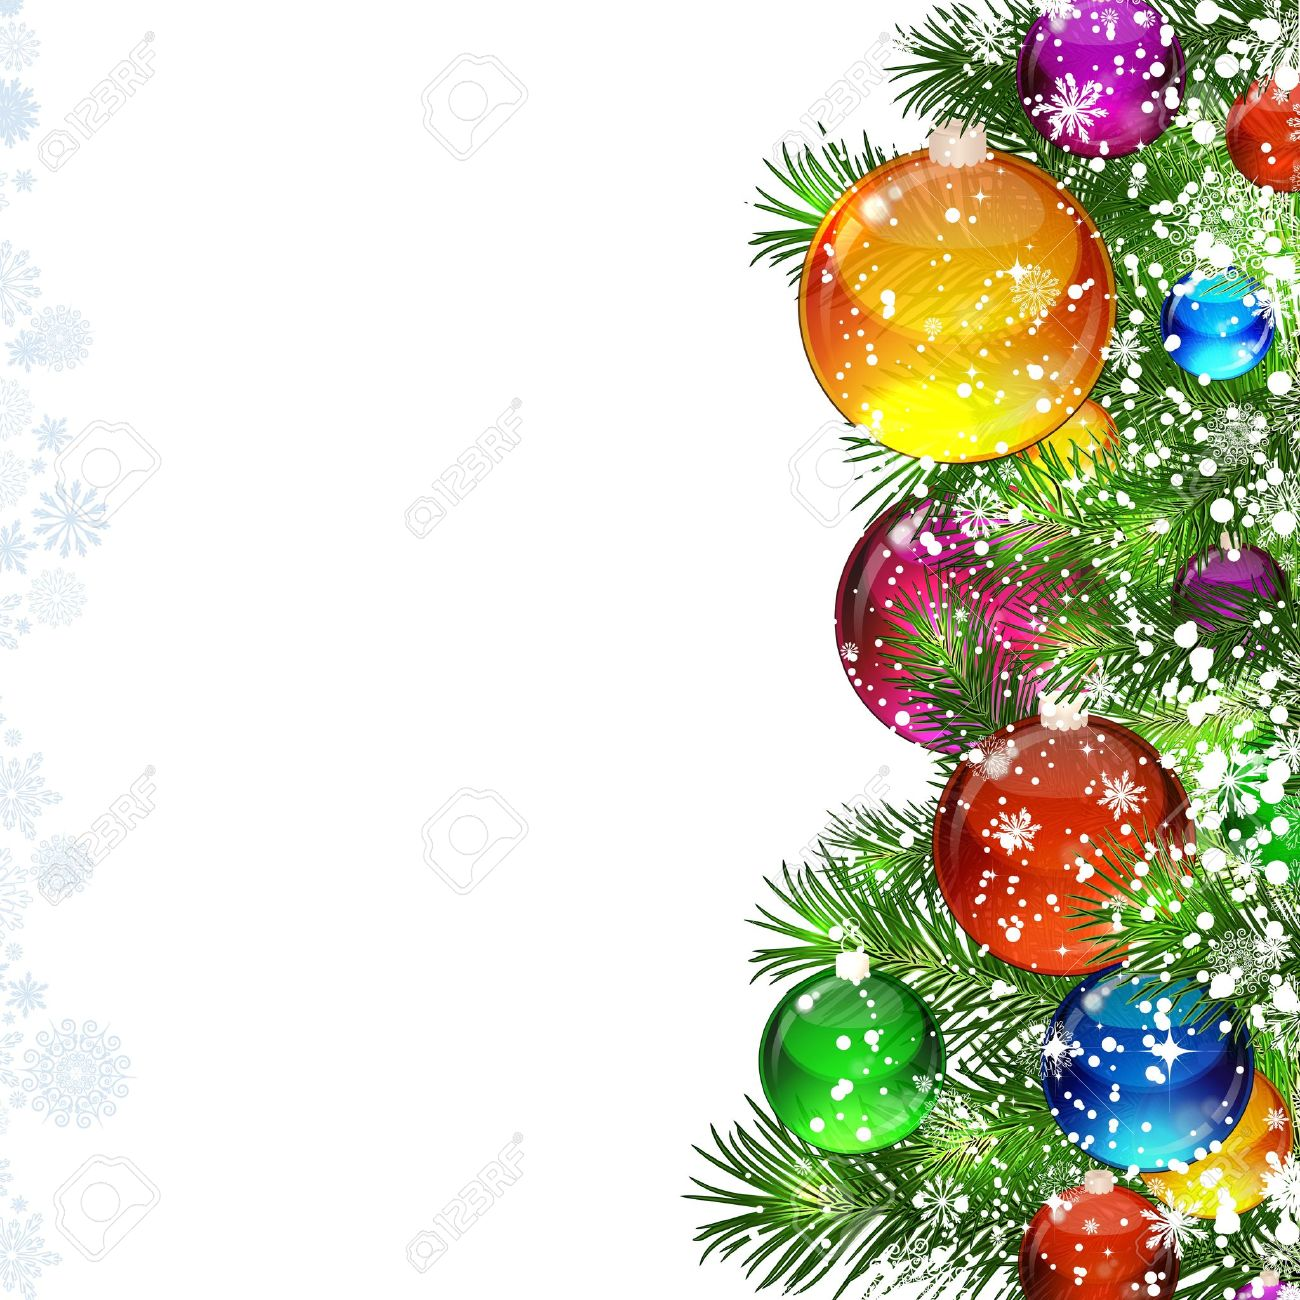 Christmas background with snow-covered Christmas tree decorated with glass balloons Stock Vector - 9362793